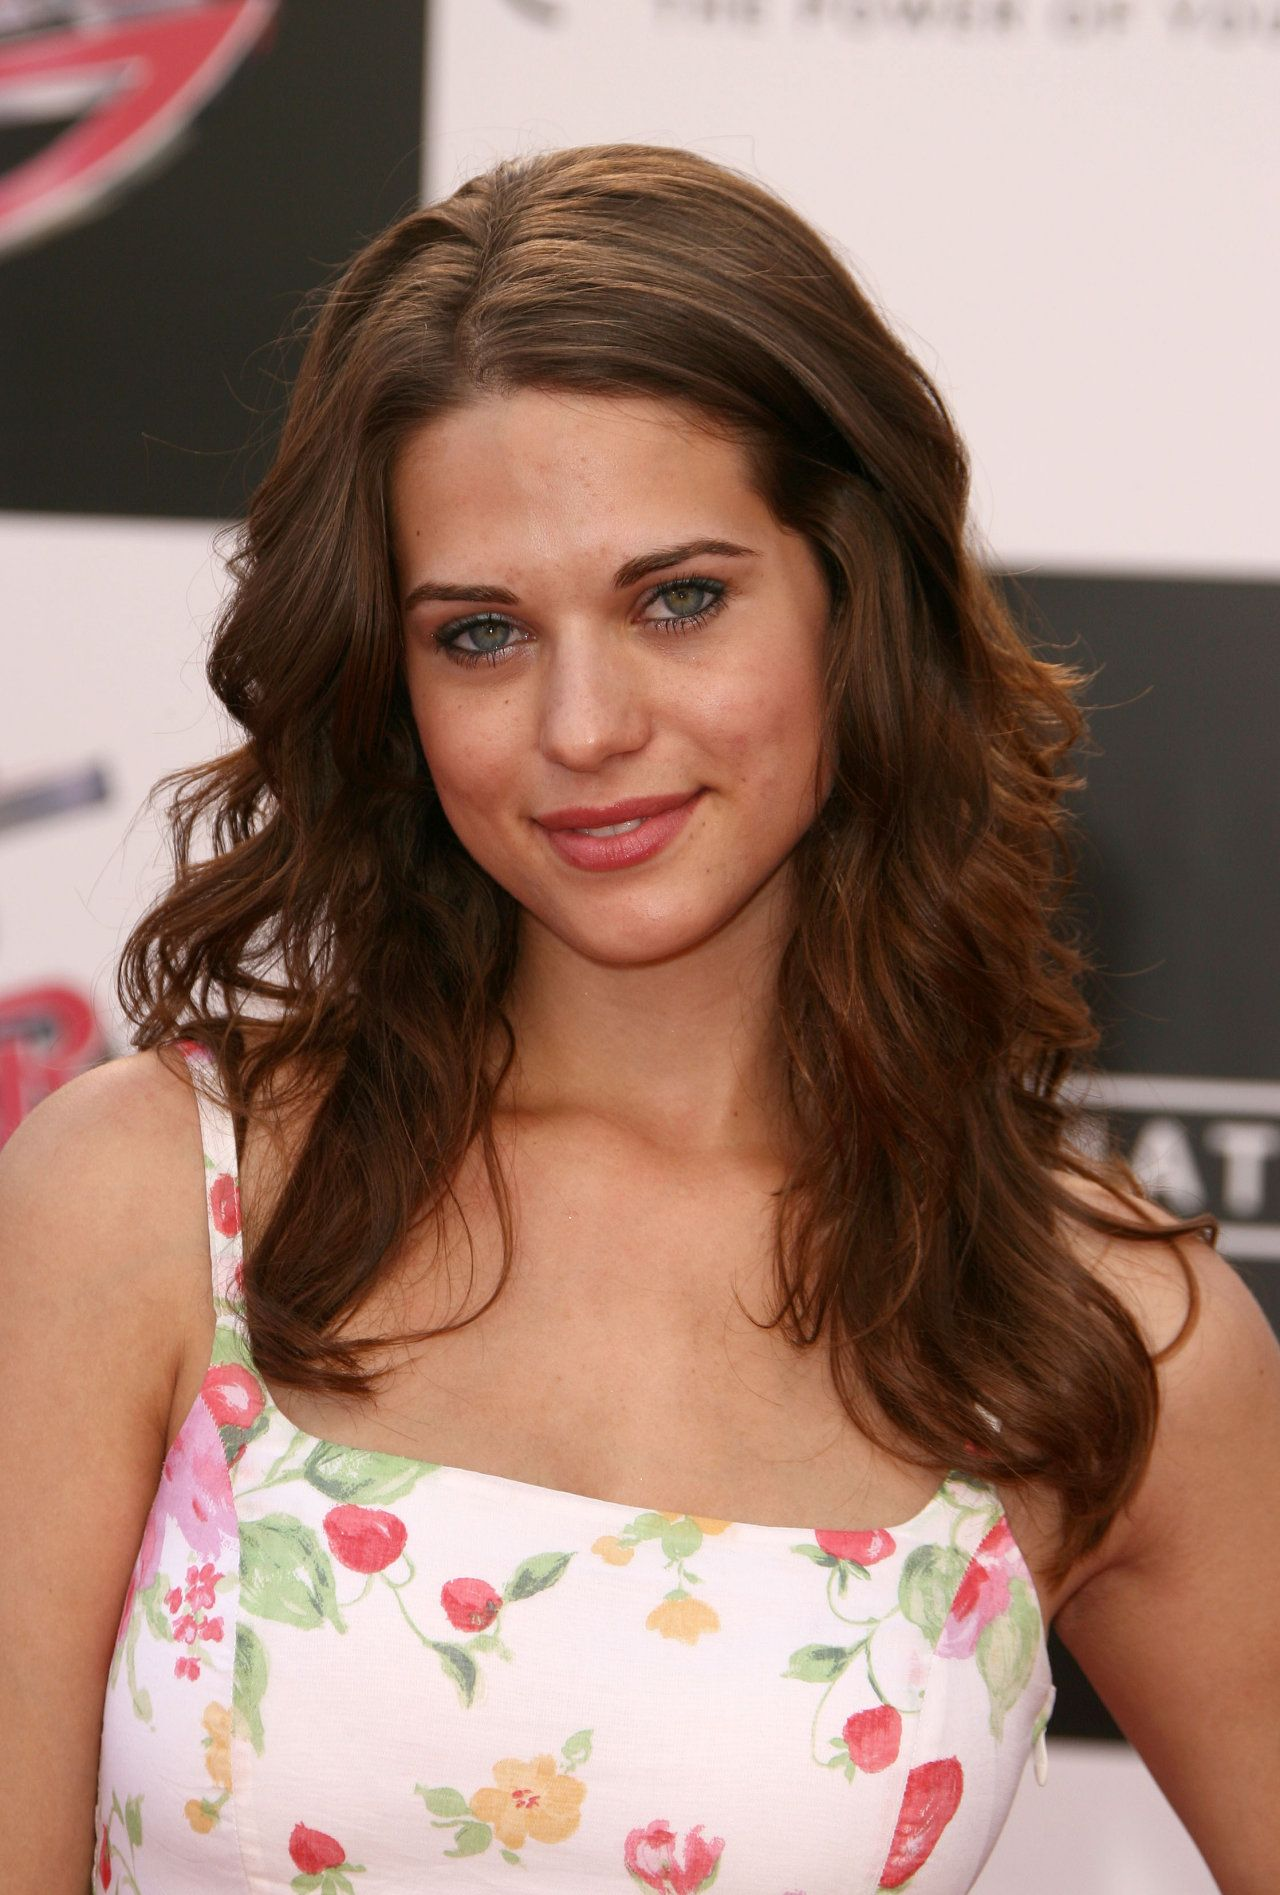 Pussy Young Lyndsy Fonseca naked photo 2017